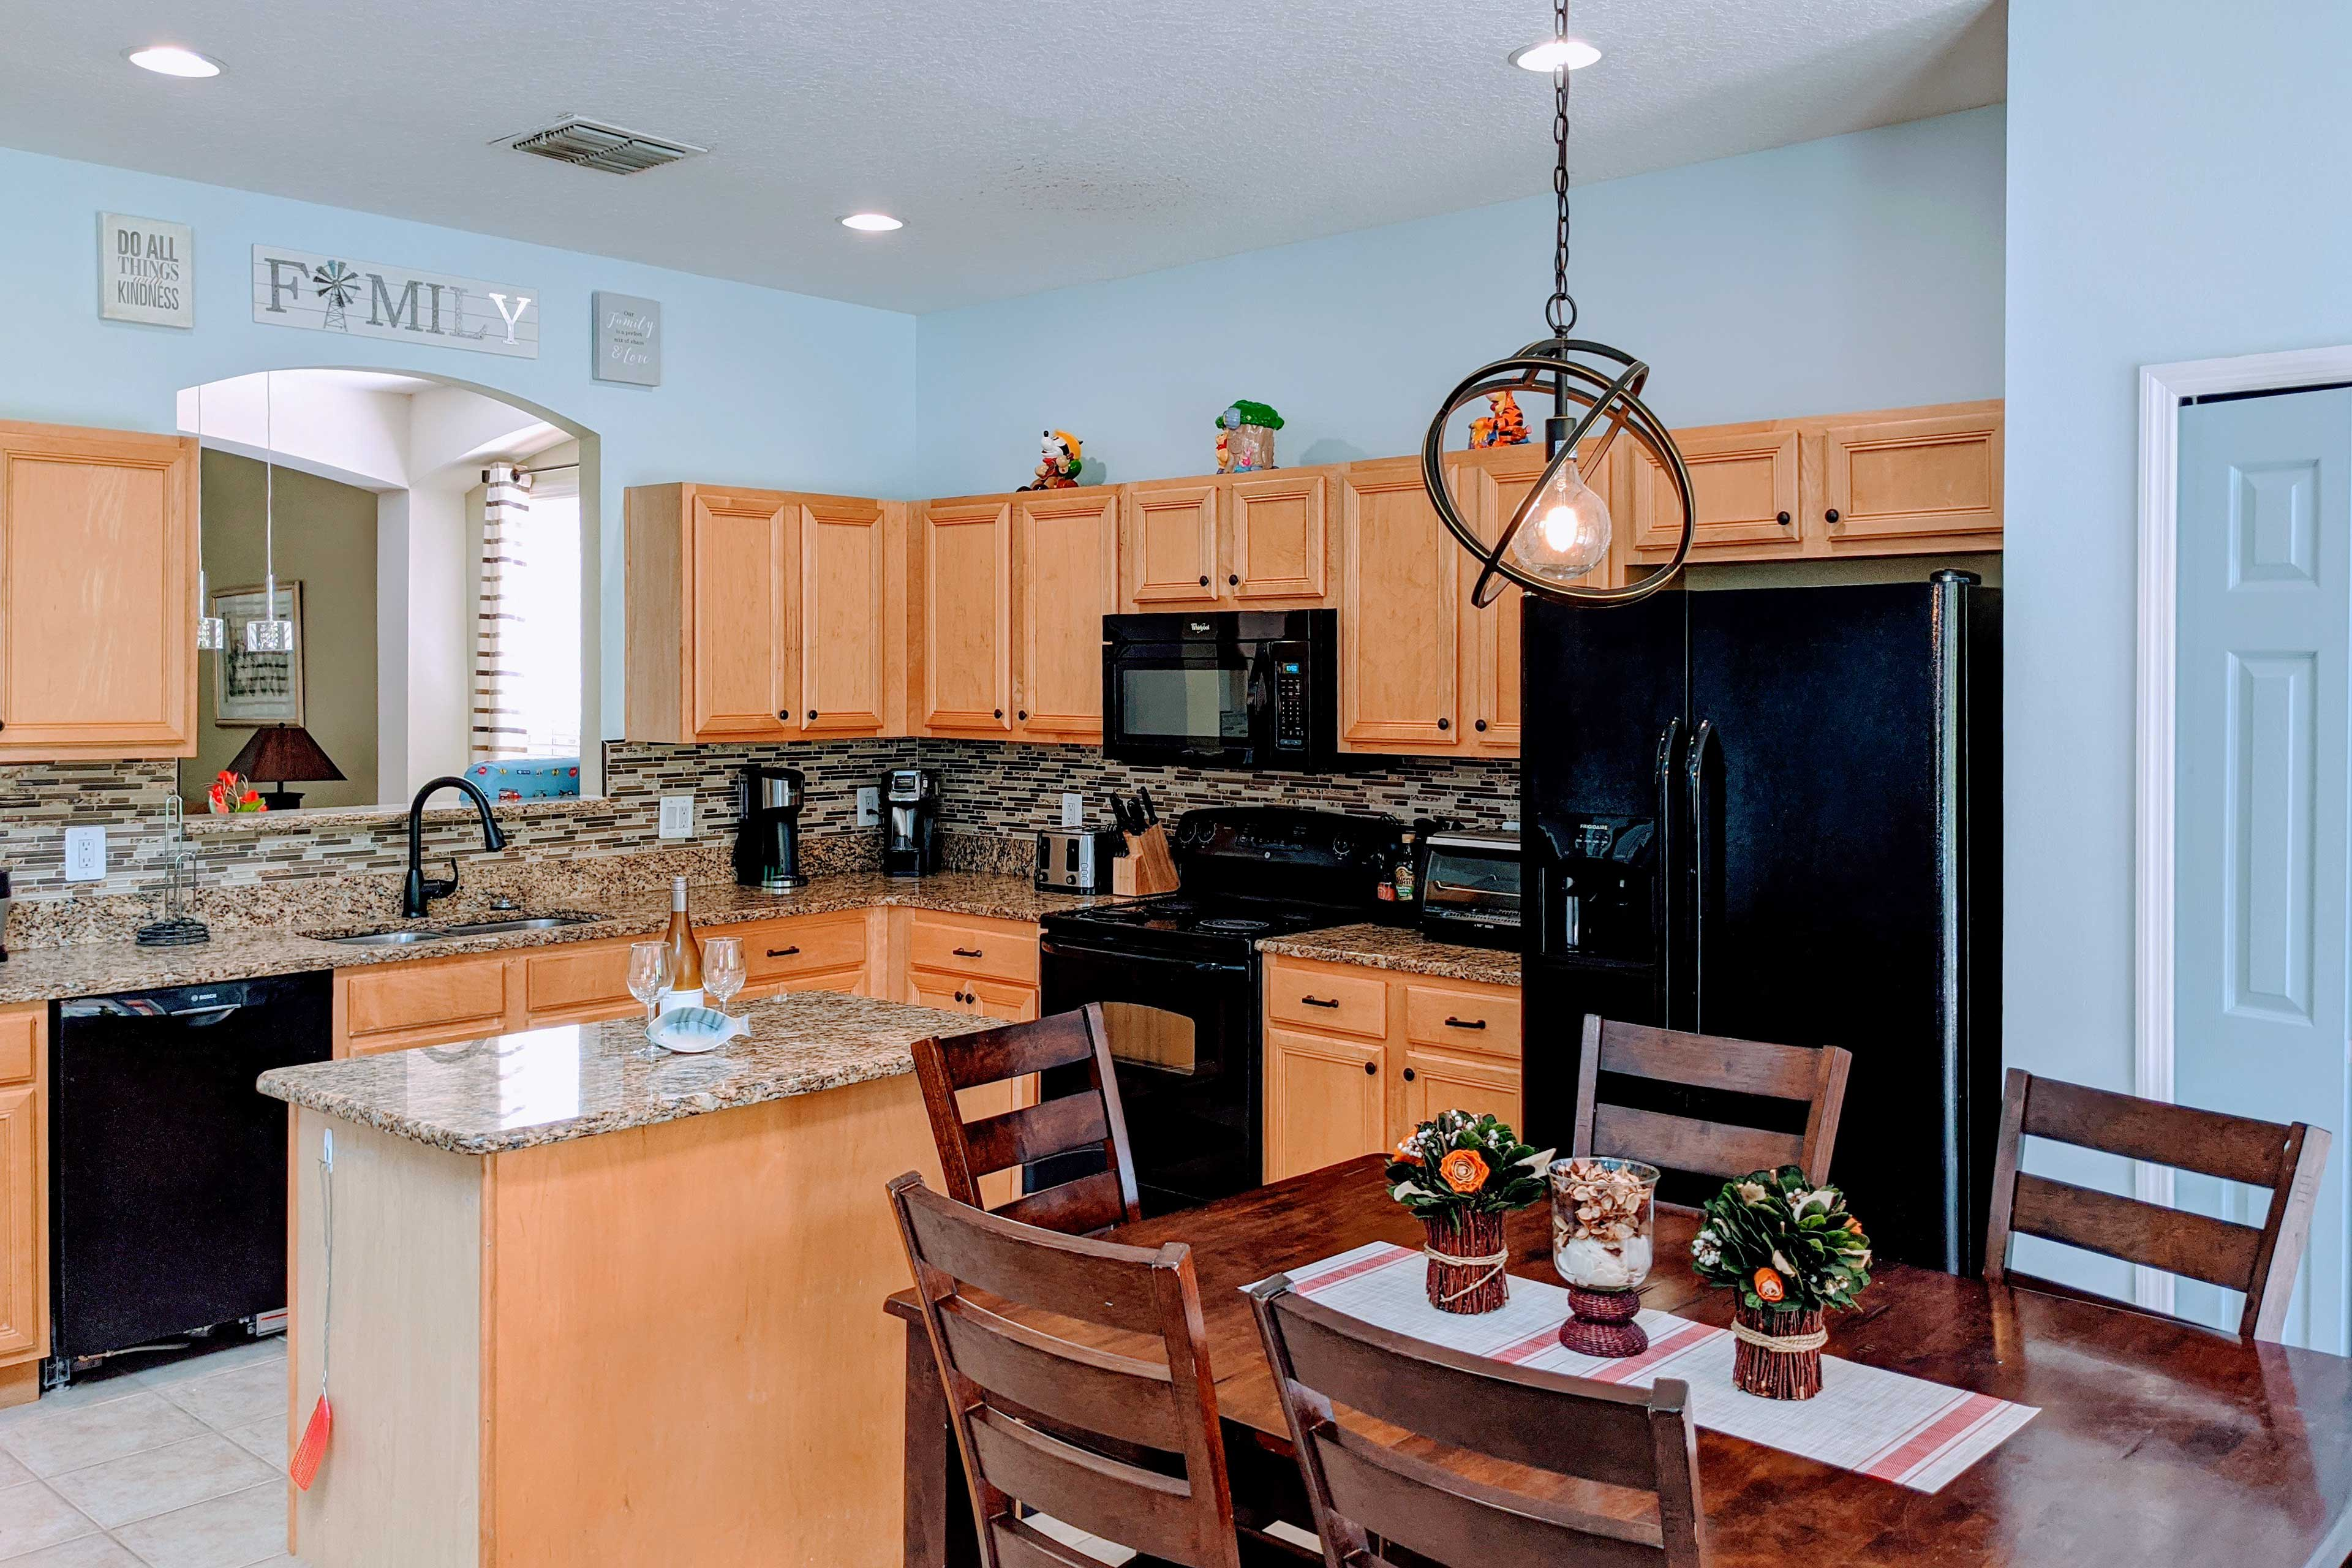 The kitchen is fully equipped and features granite counters.